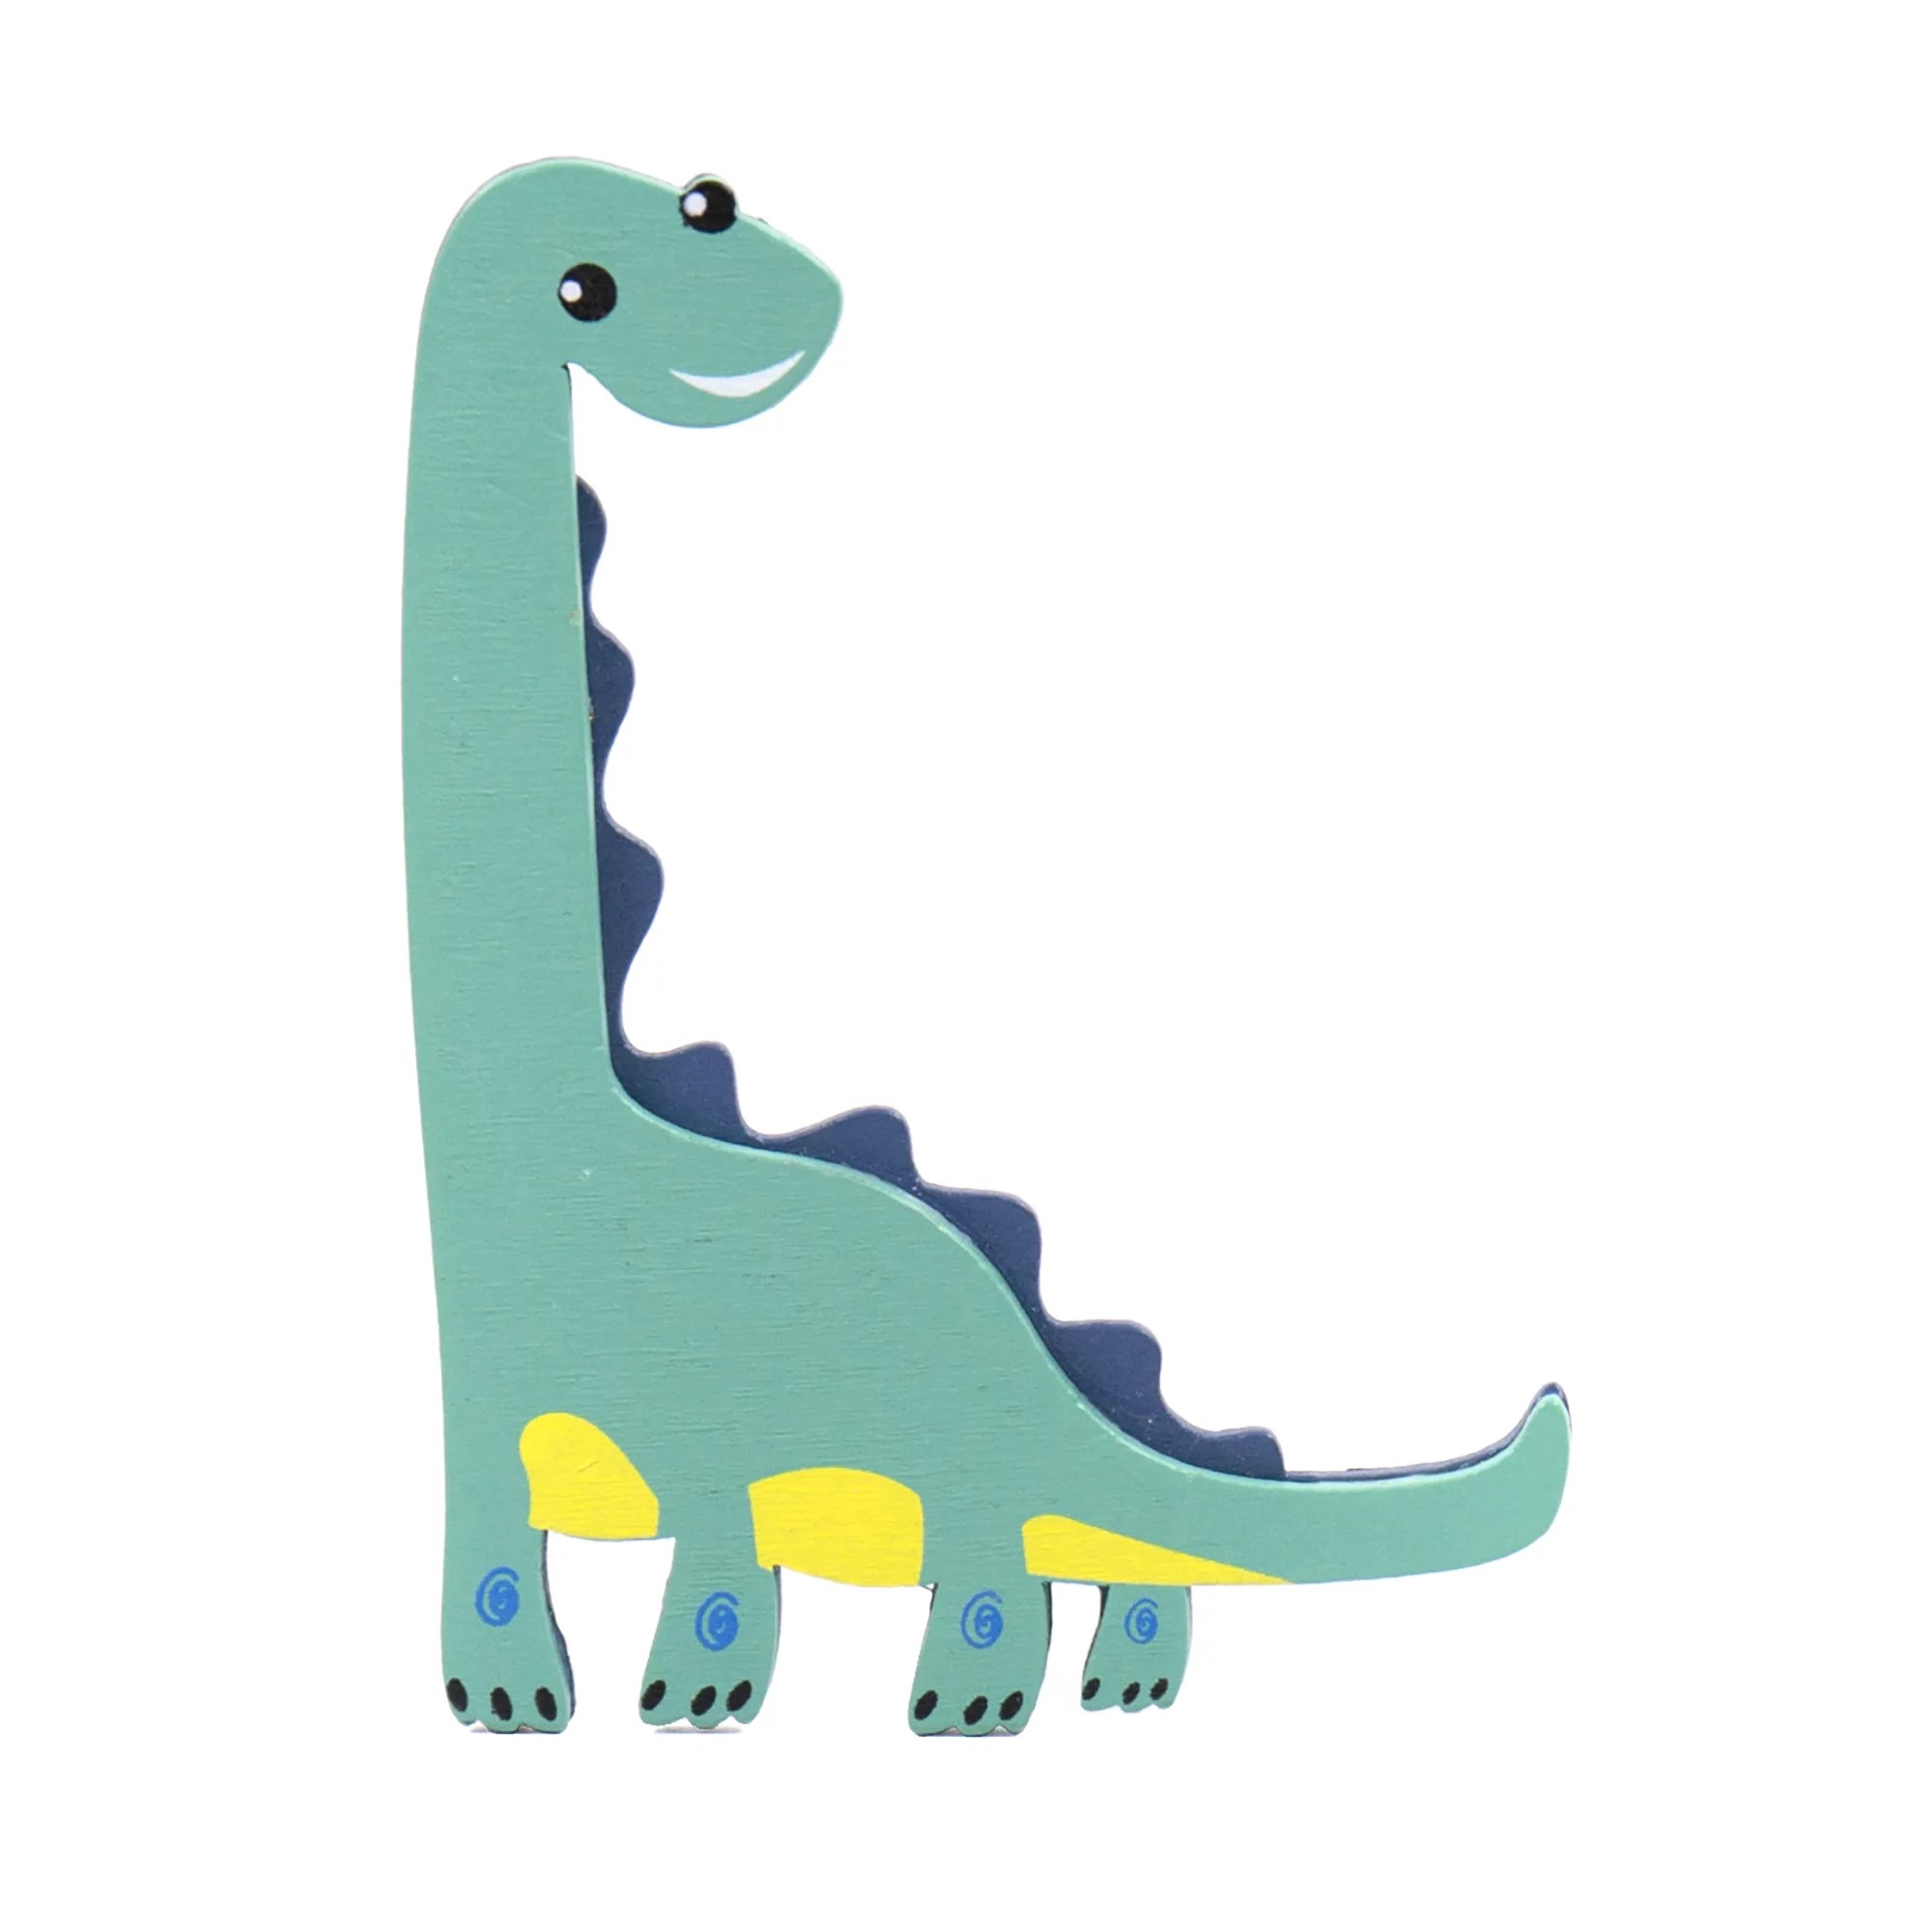 Go Create Wooden Dinosaur Pre Painted Cut Out 1 Each